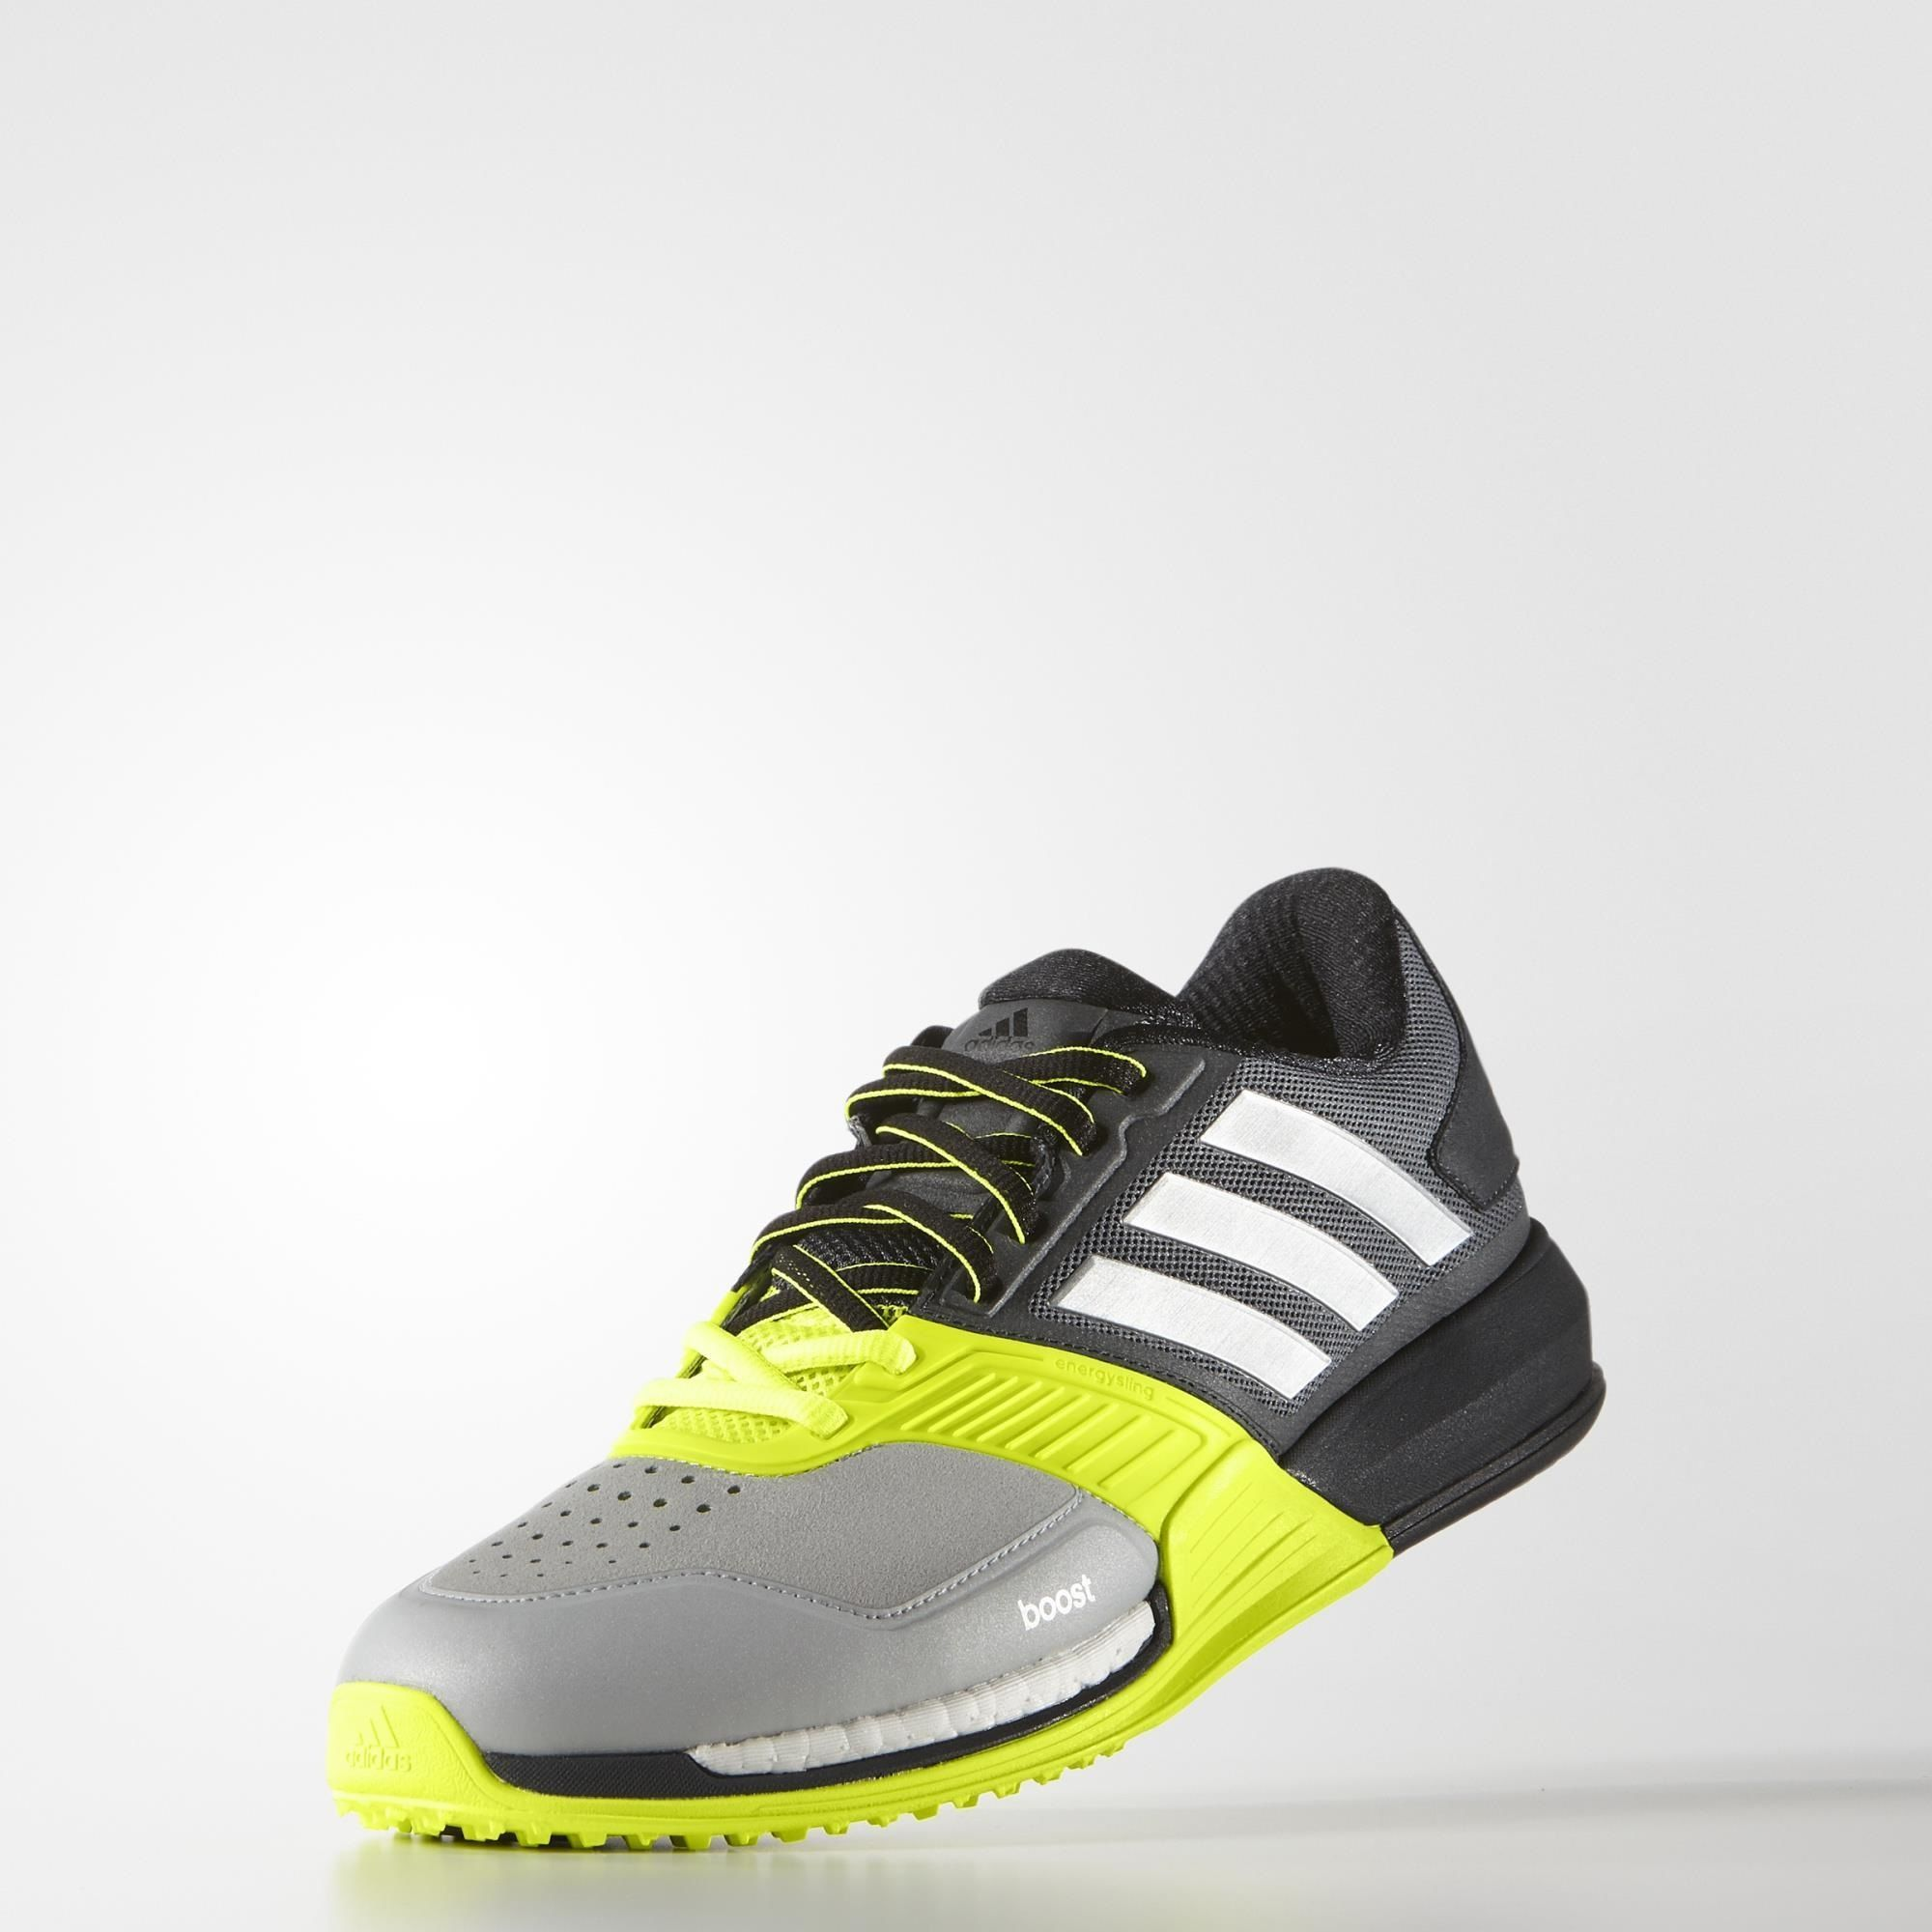 adidas - Crazy Train Boost Shoes